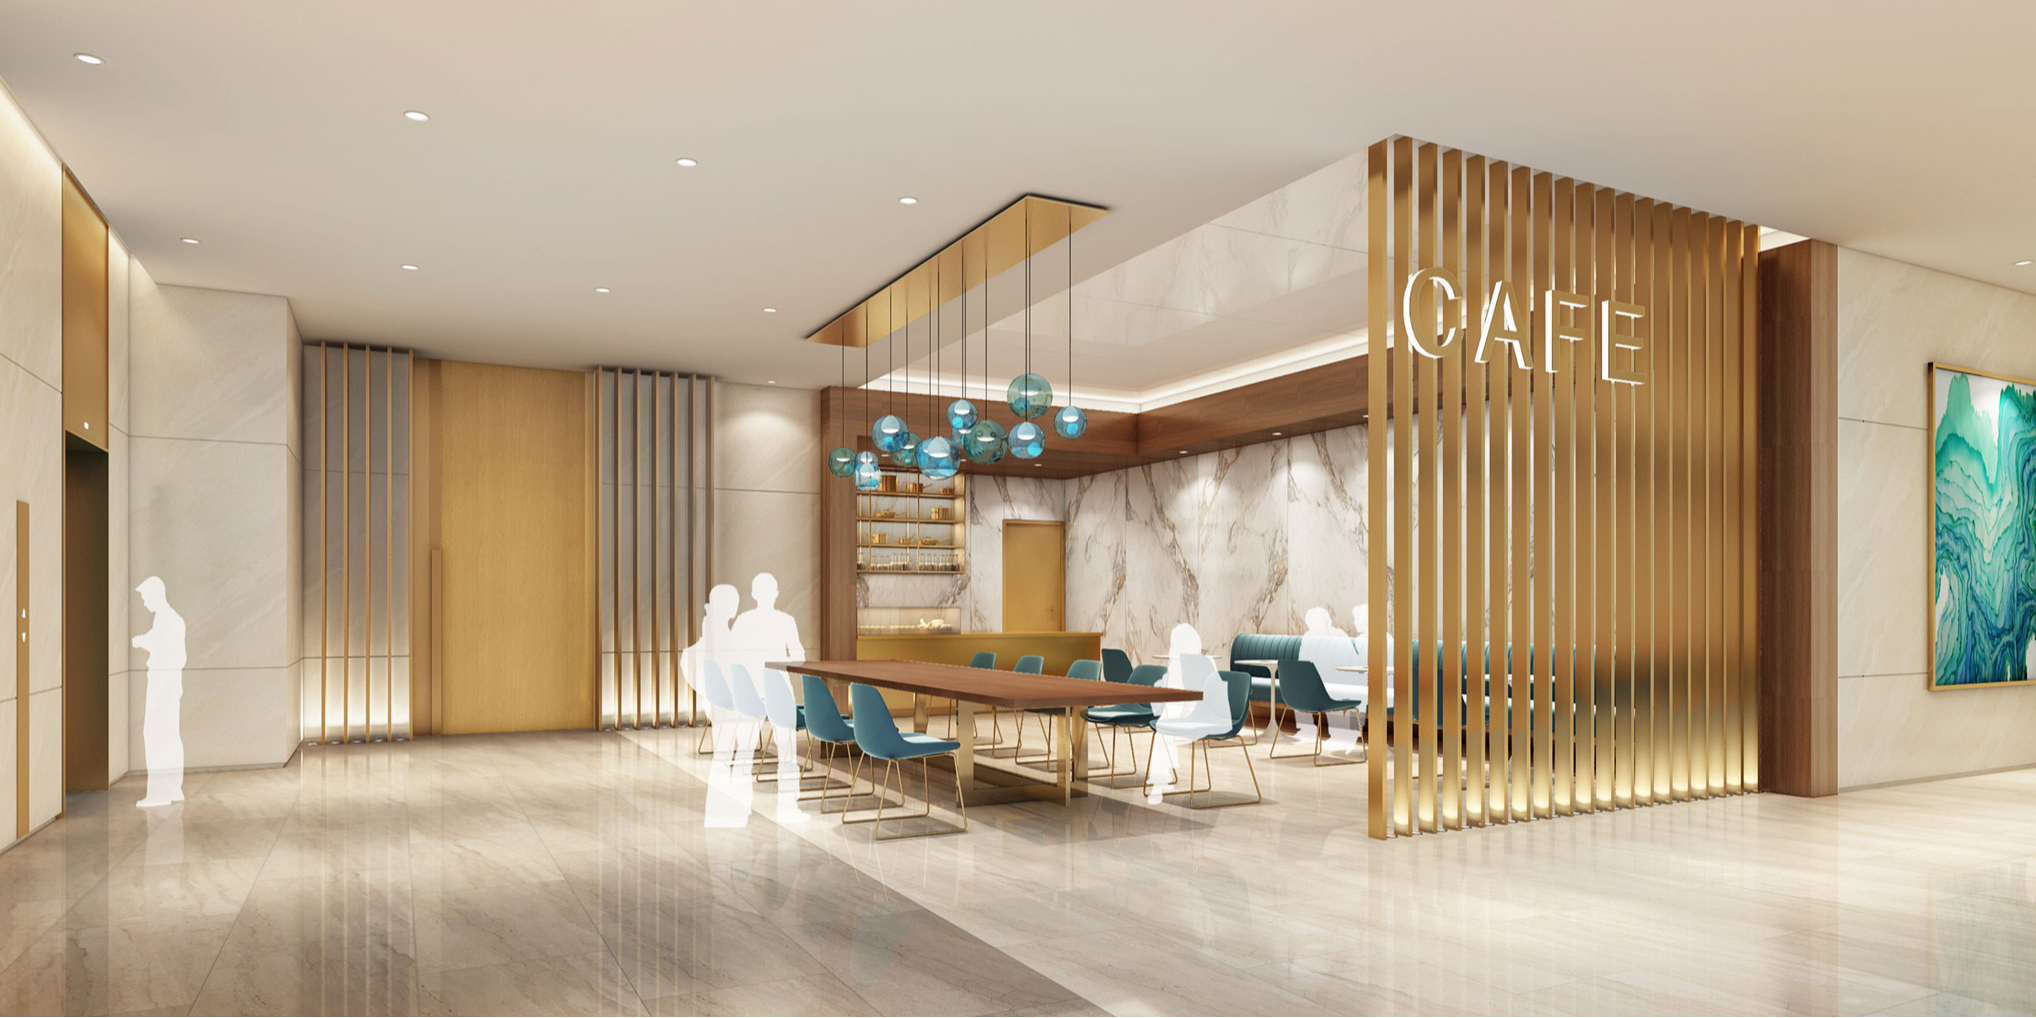 Cafe concept at Lanhai Medical Center, the World's Largest Clinic in the Luijiazui Financil Center in Shanghai, China